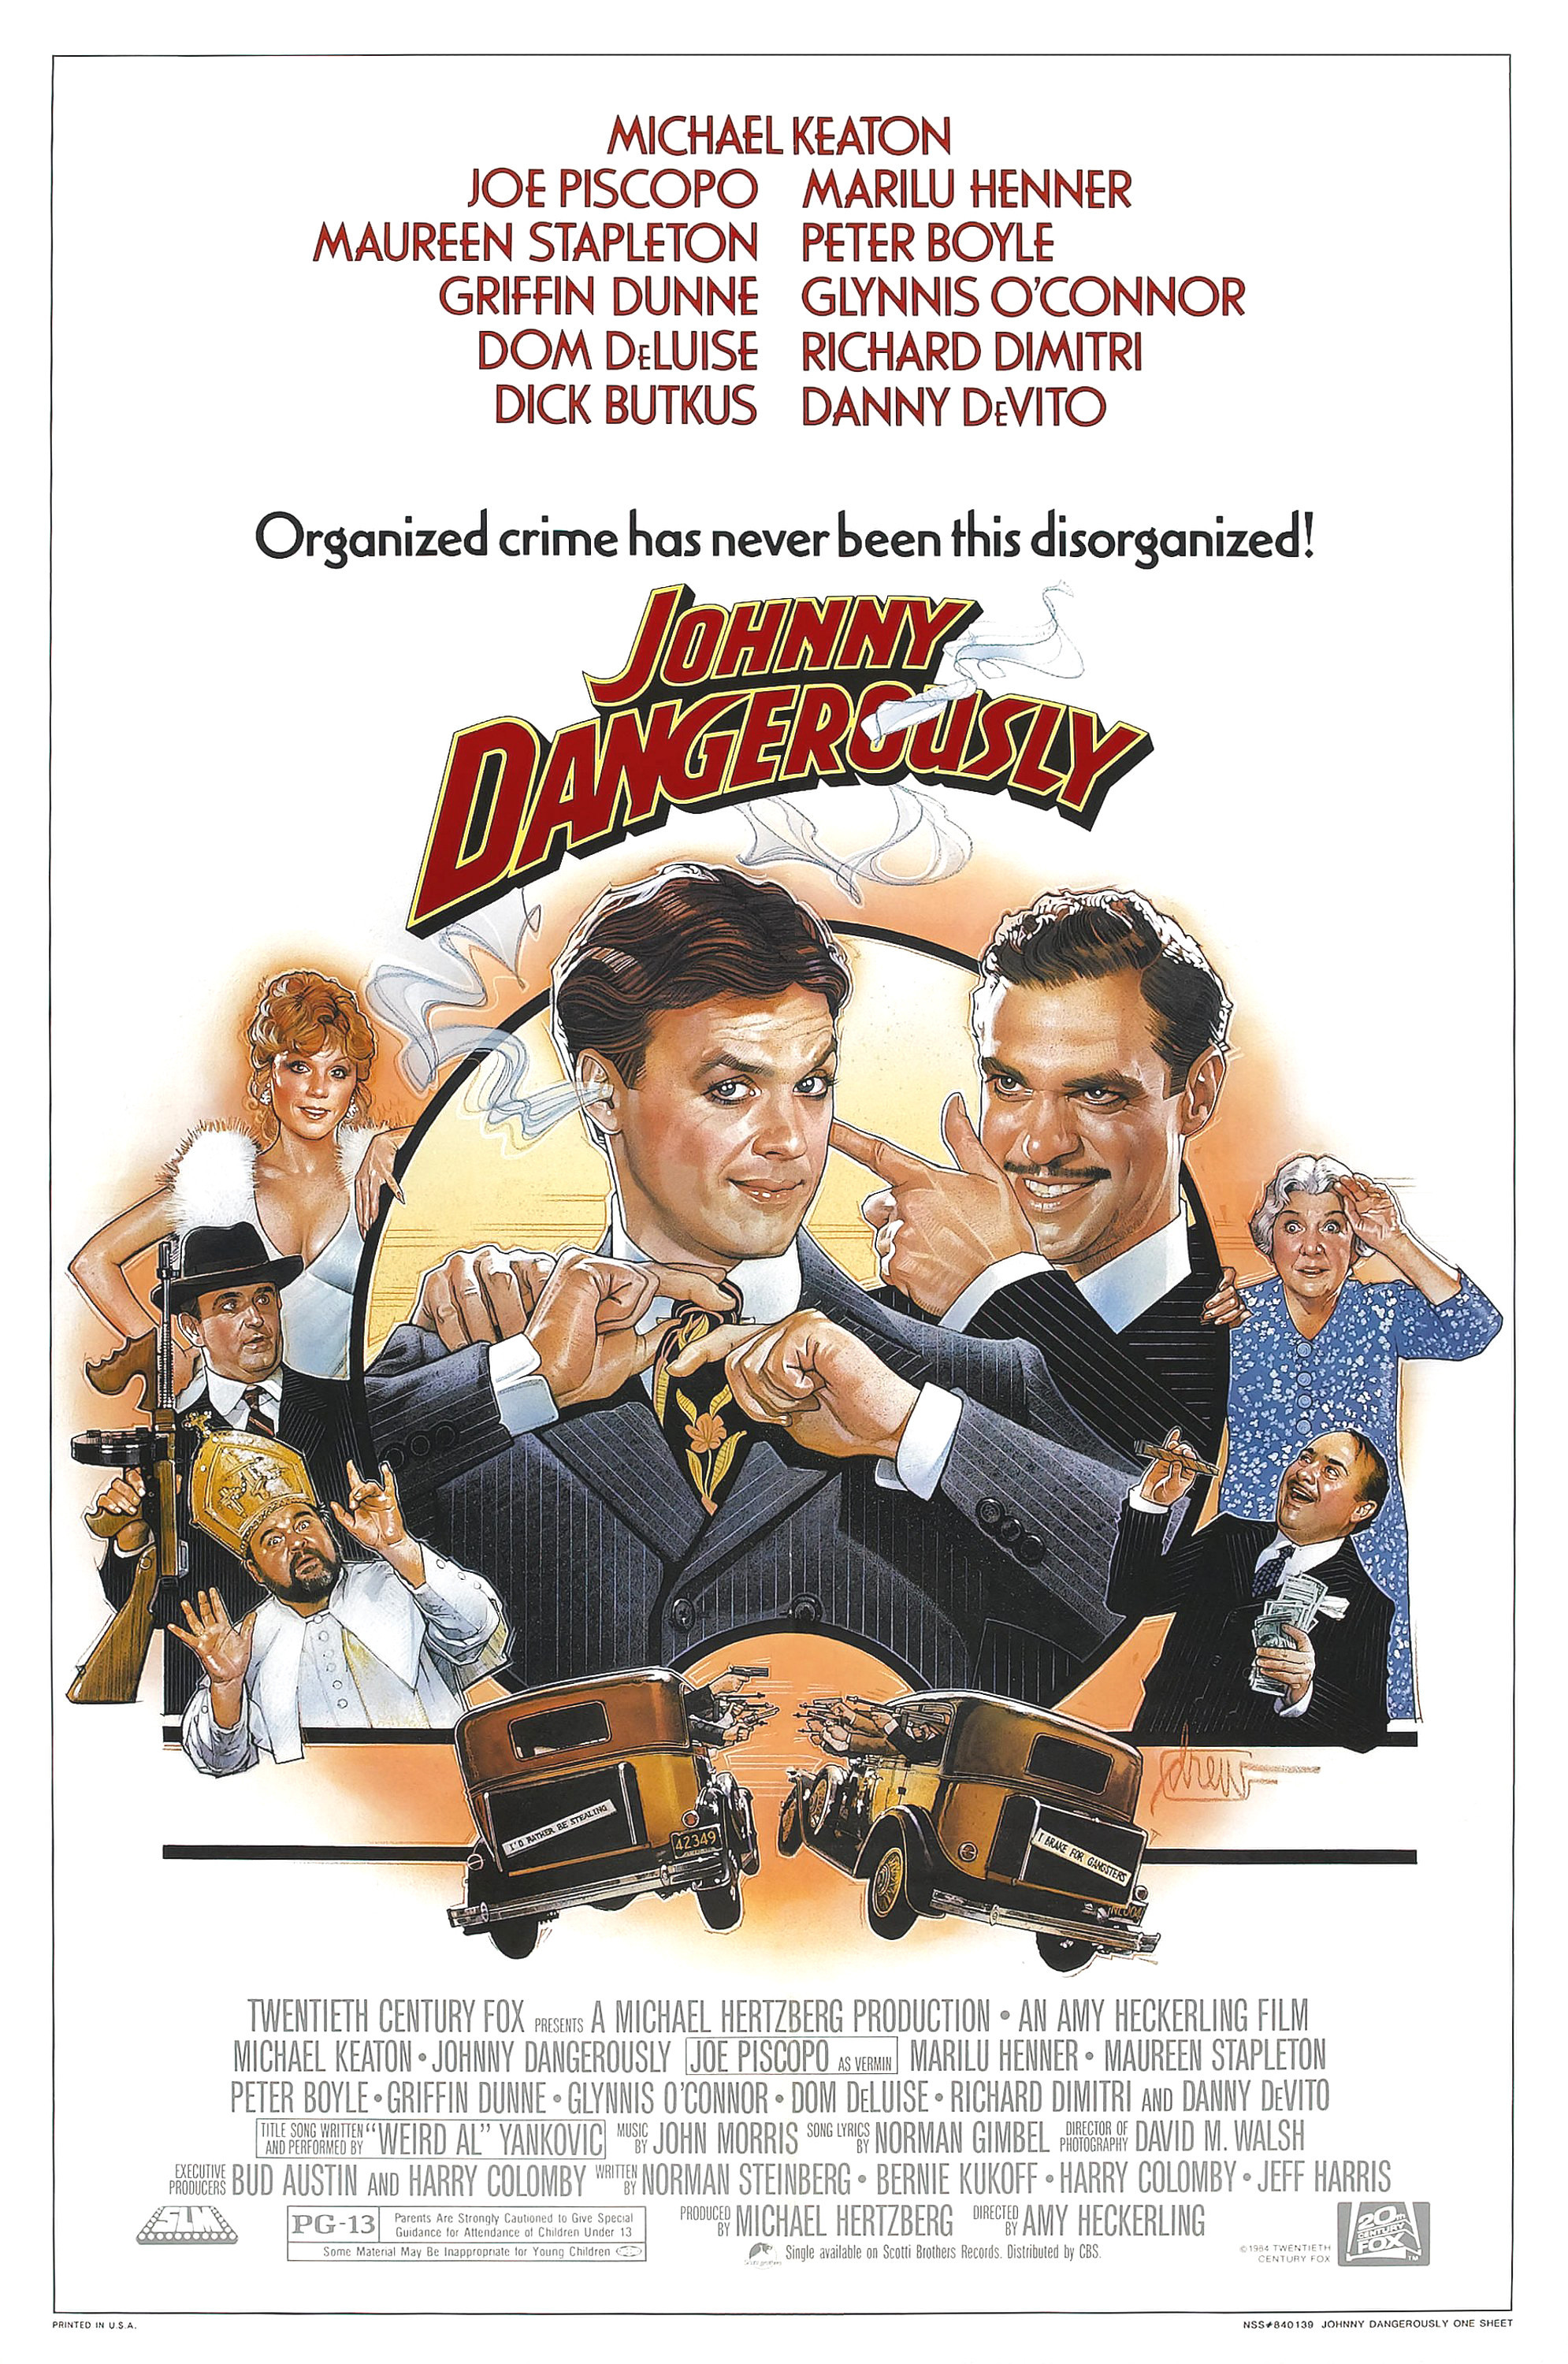 Johnny Dangerously Cast